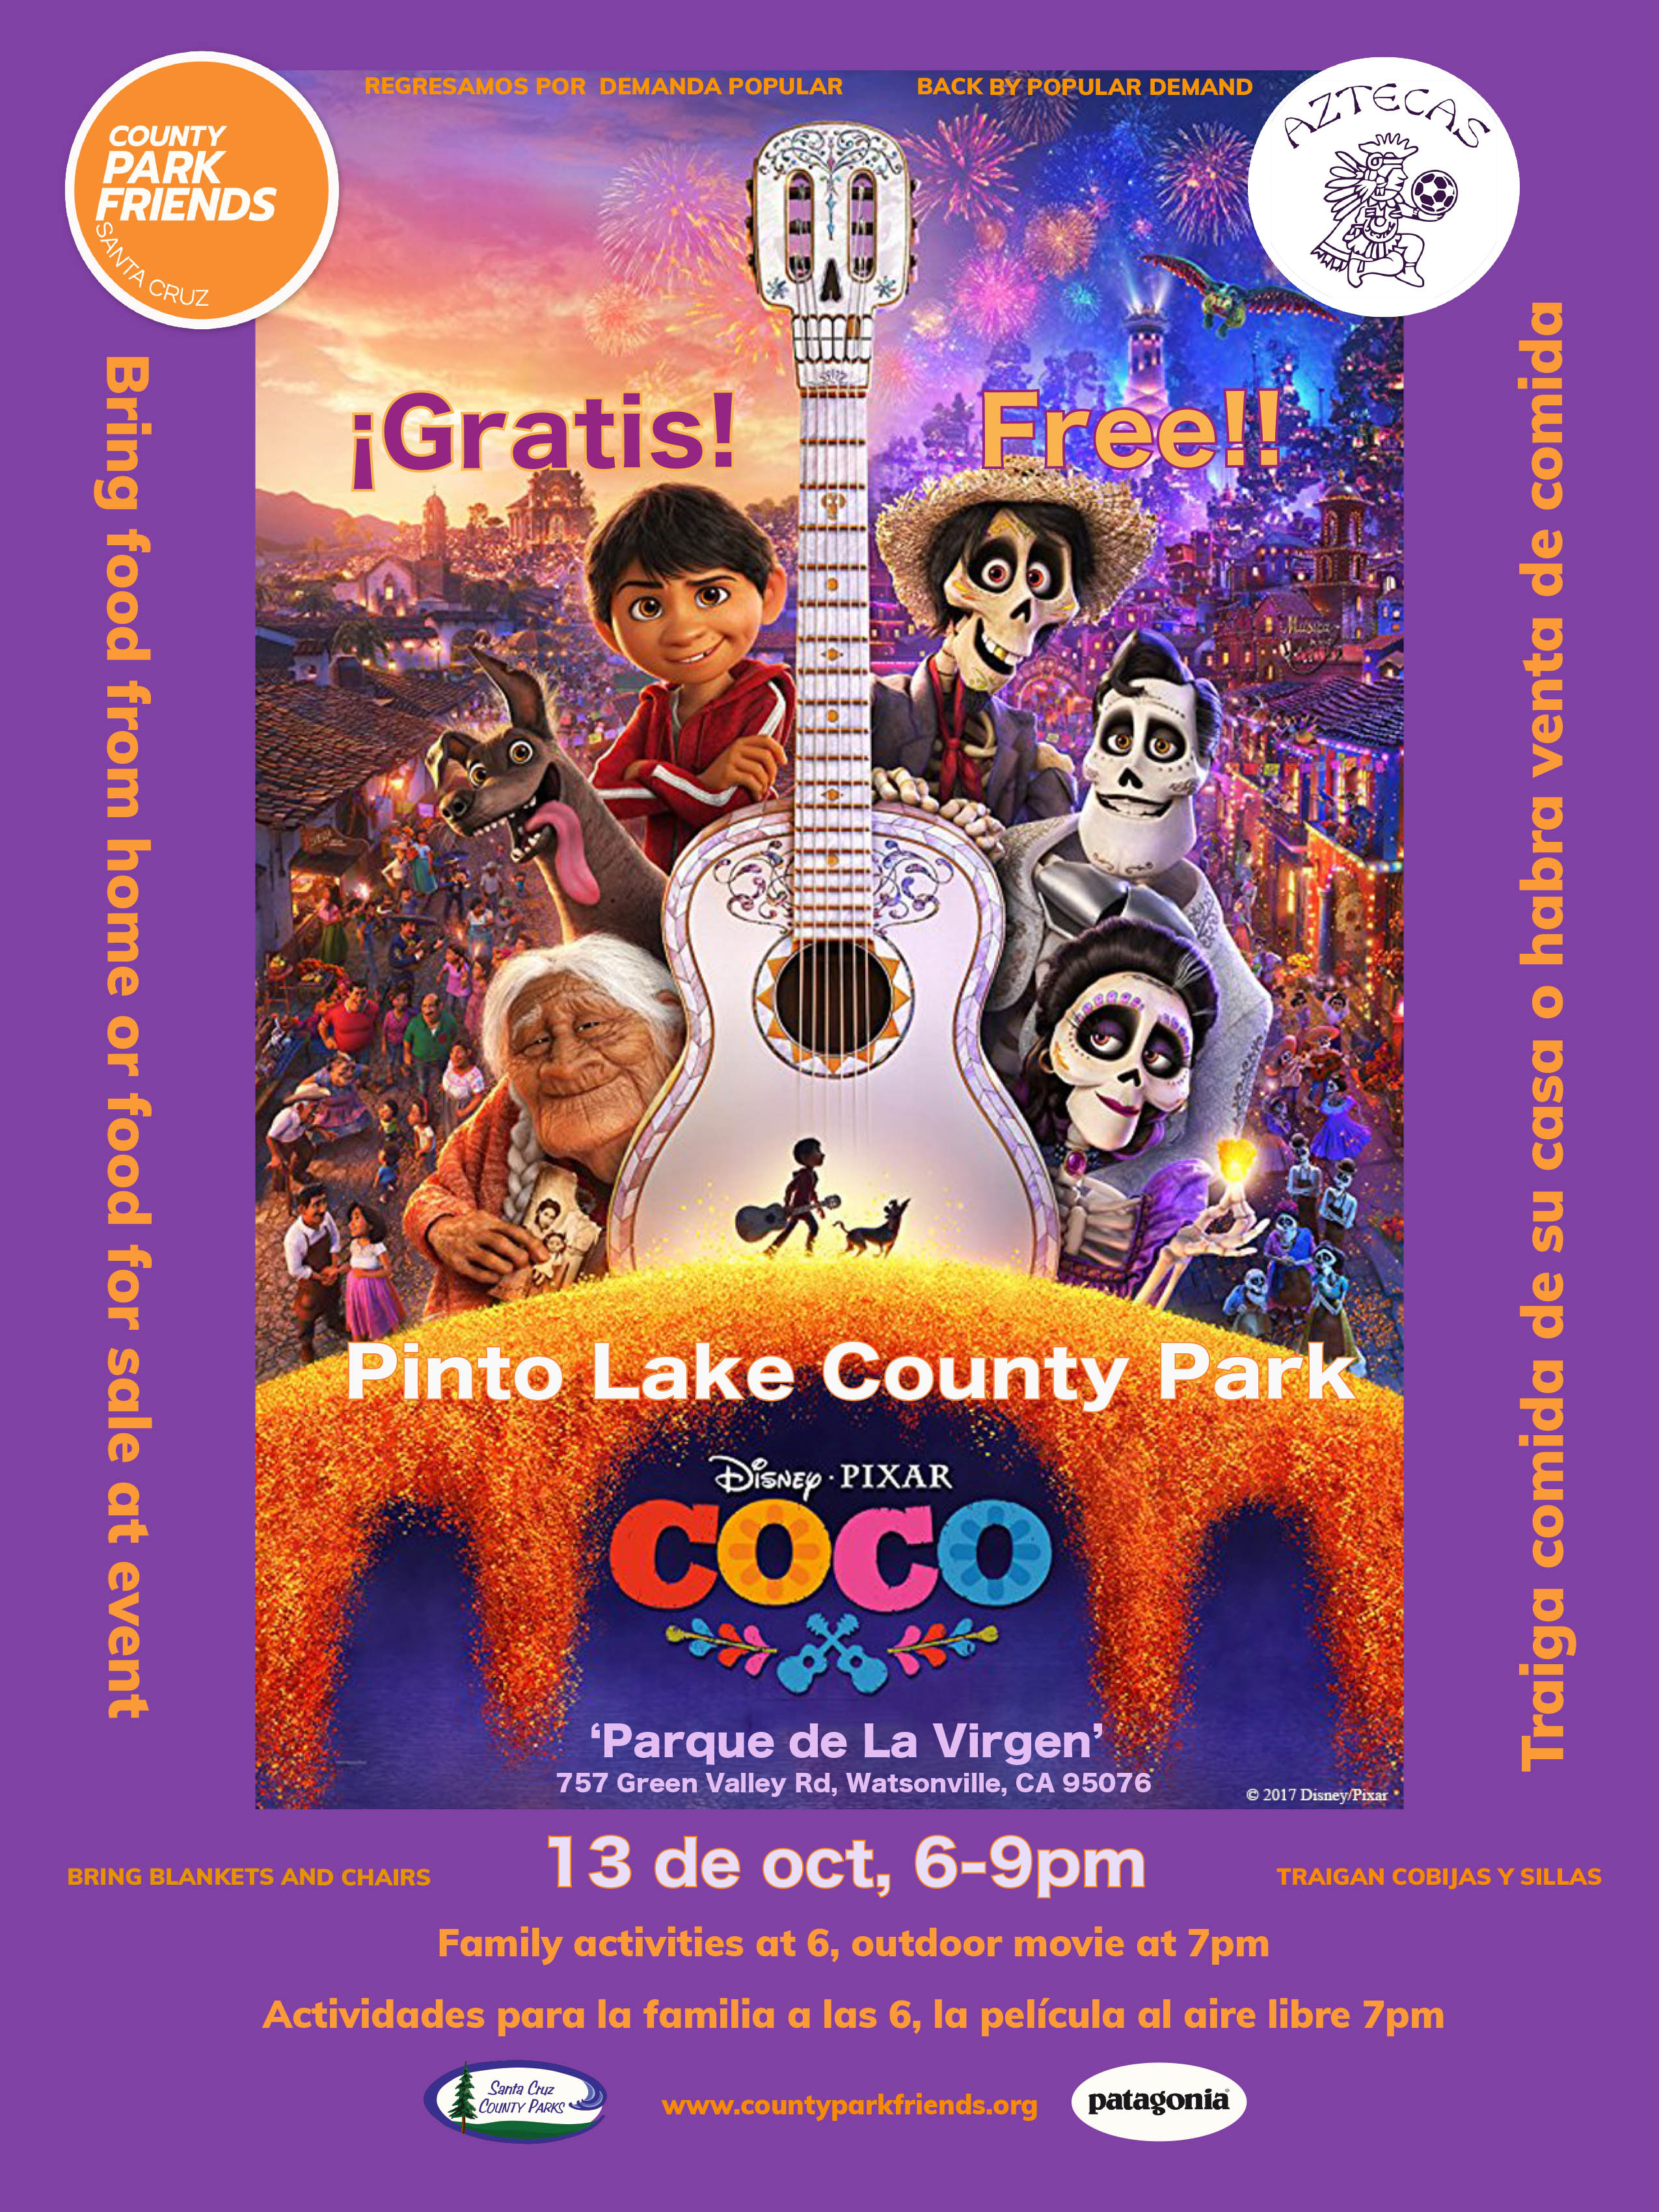 FREE Viewing of COCO